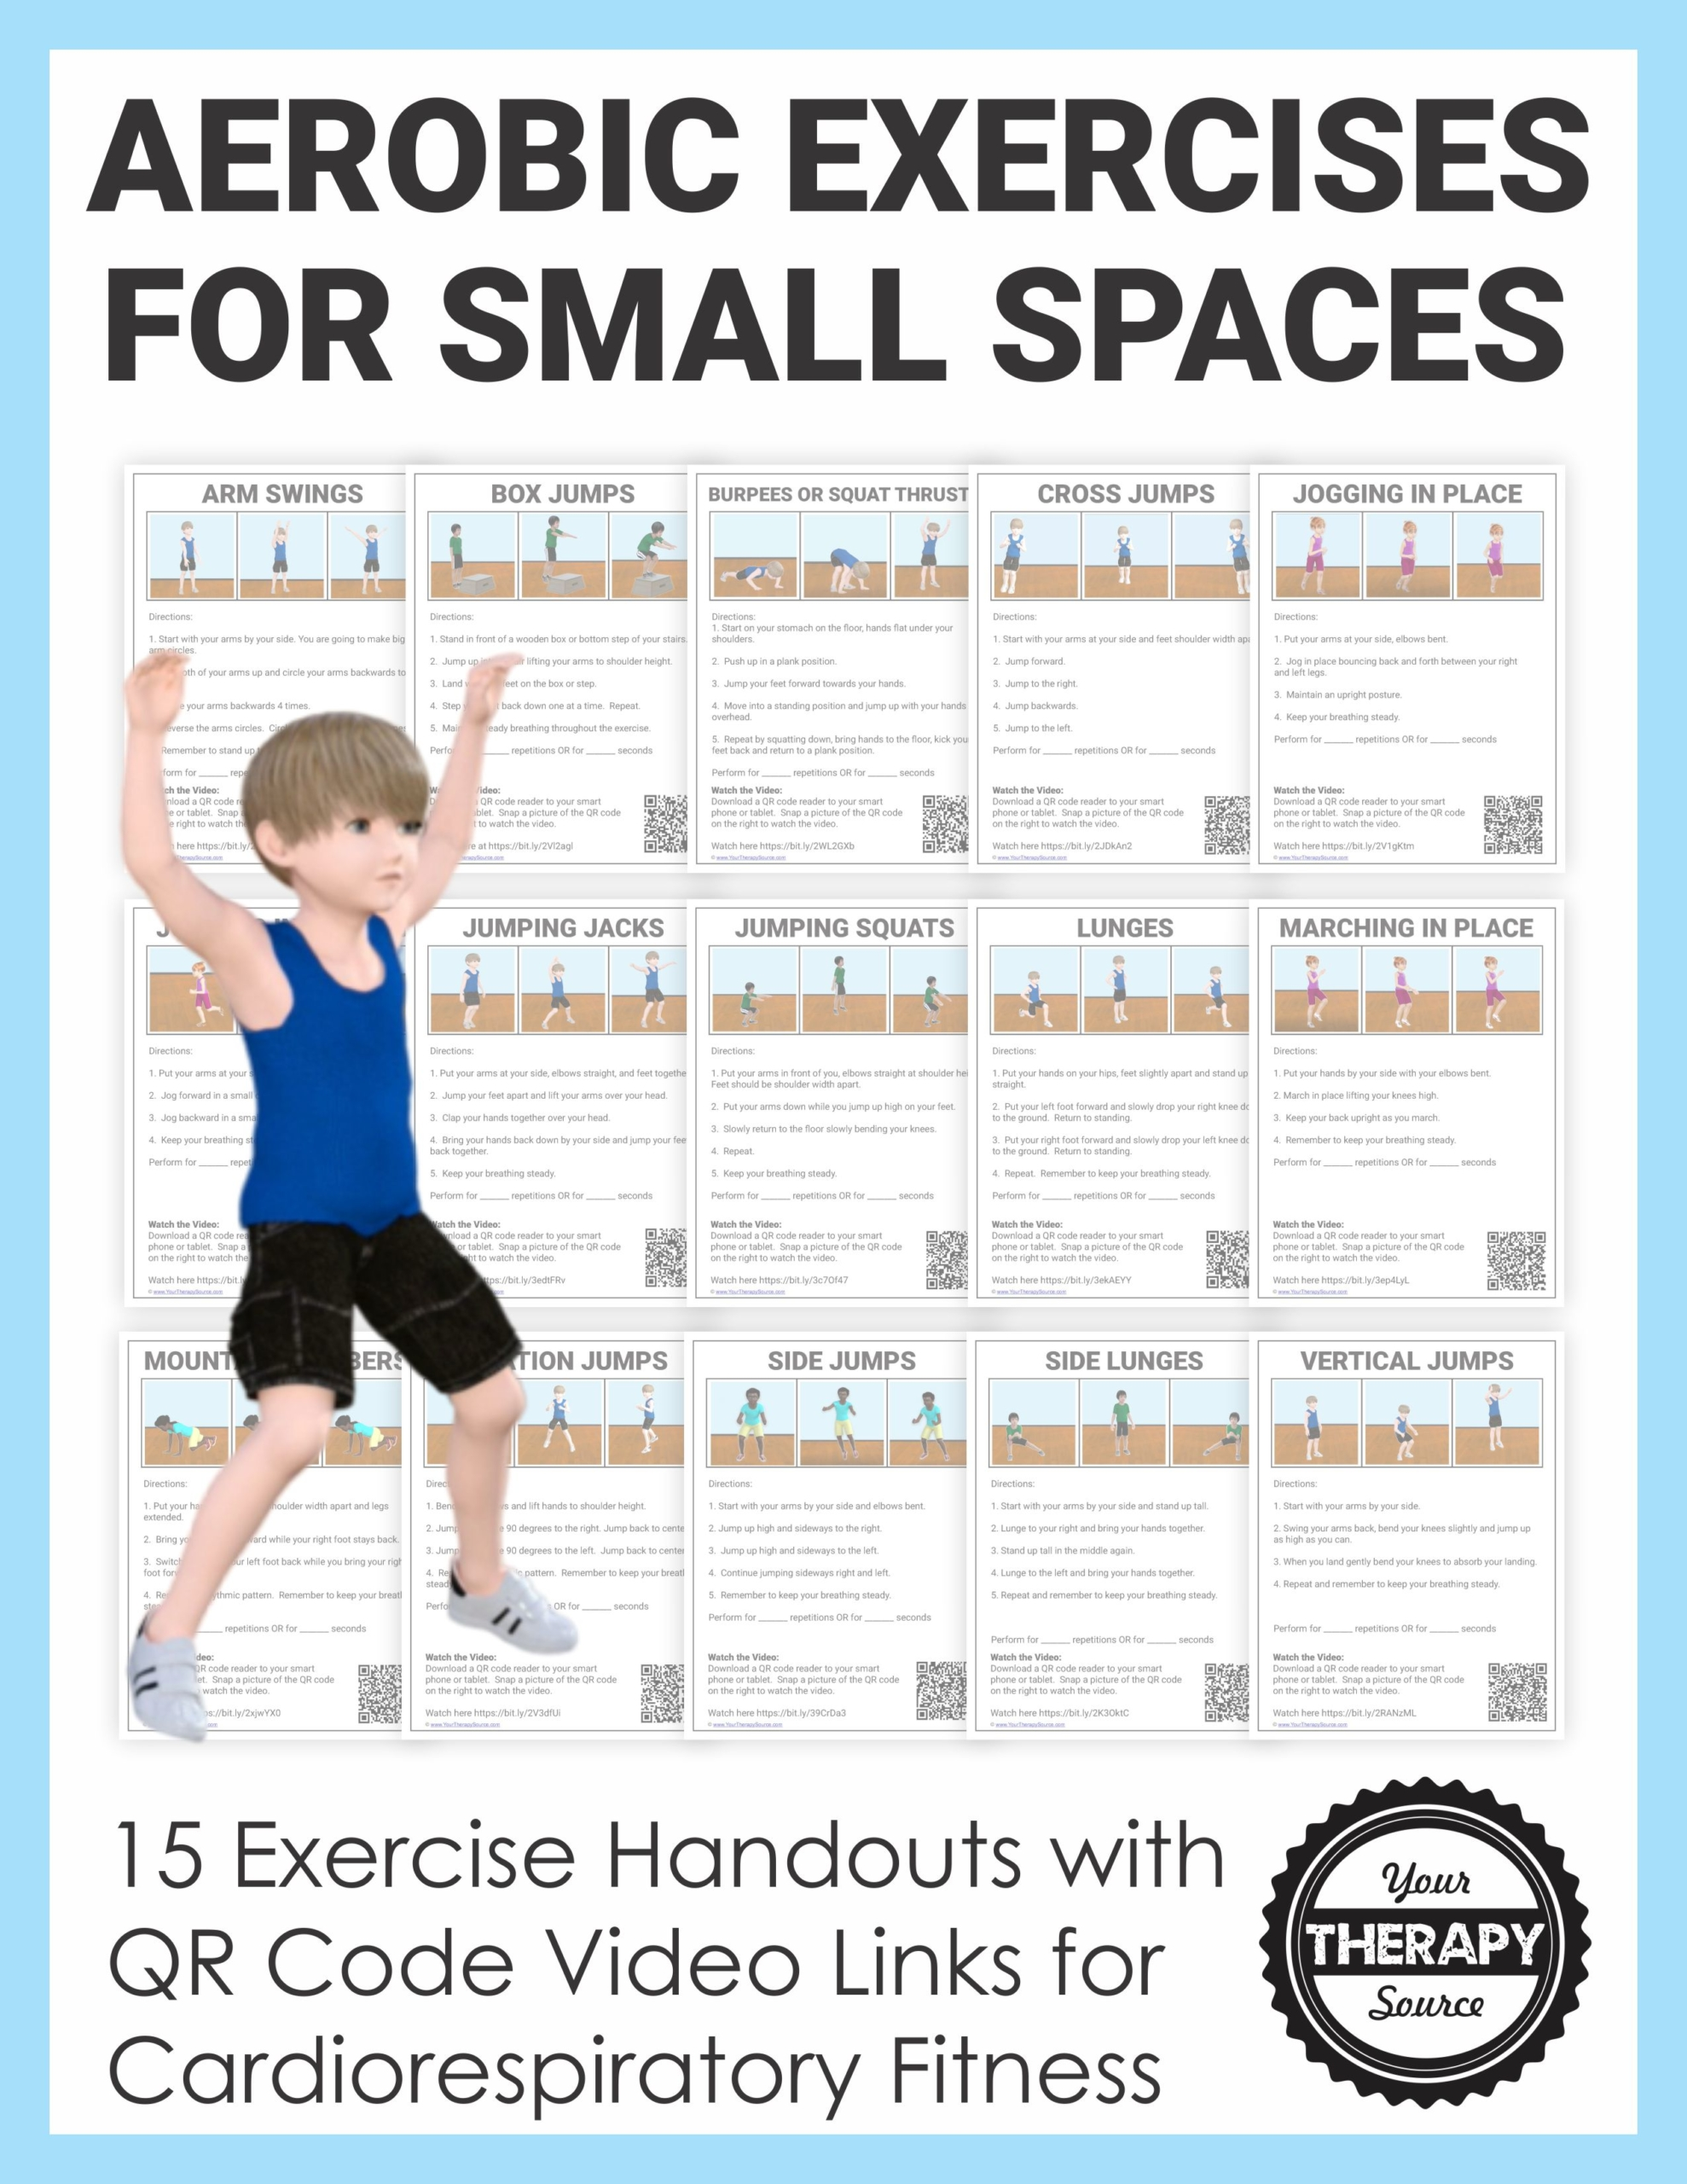 Cardio Aerobic Exercises For Small Spaces